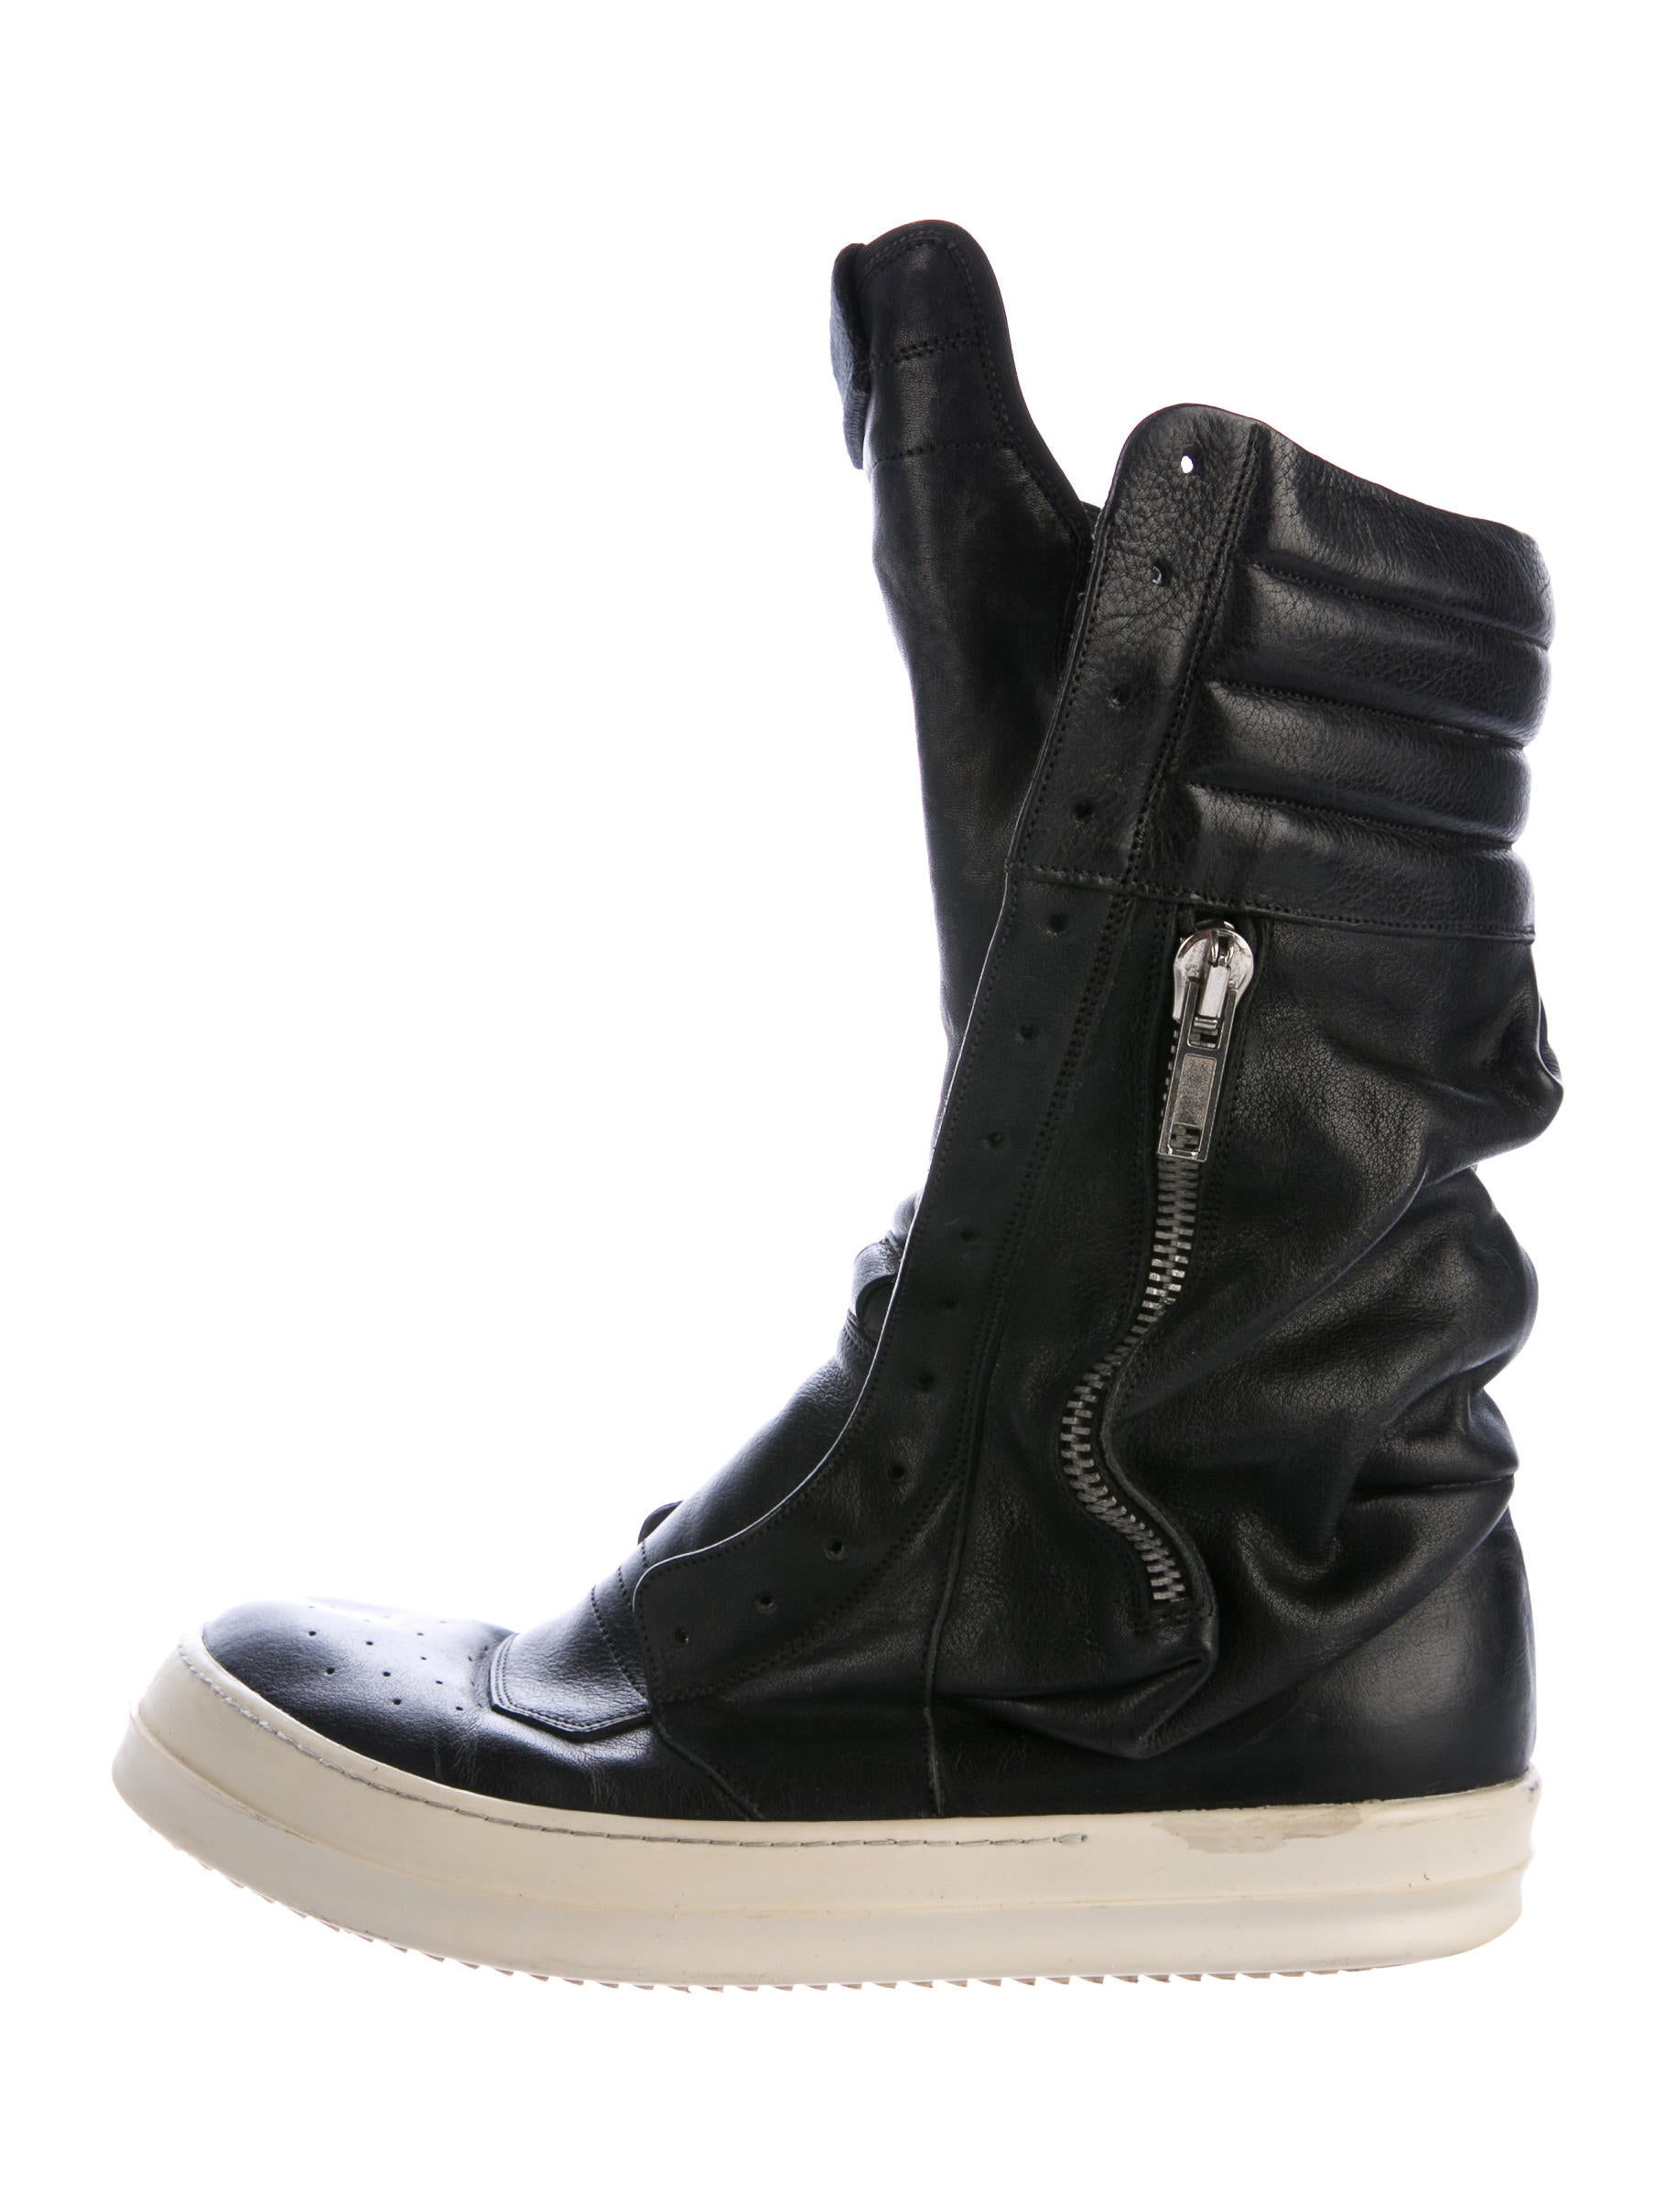 Rick Owens Leather Laceless Sneakers Shoes Ric29476